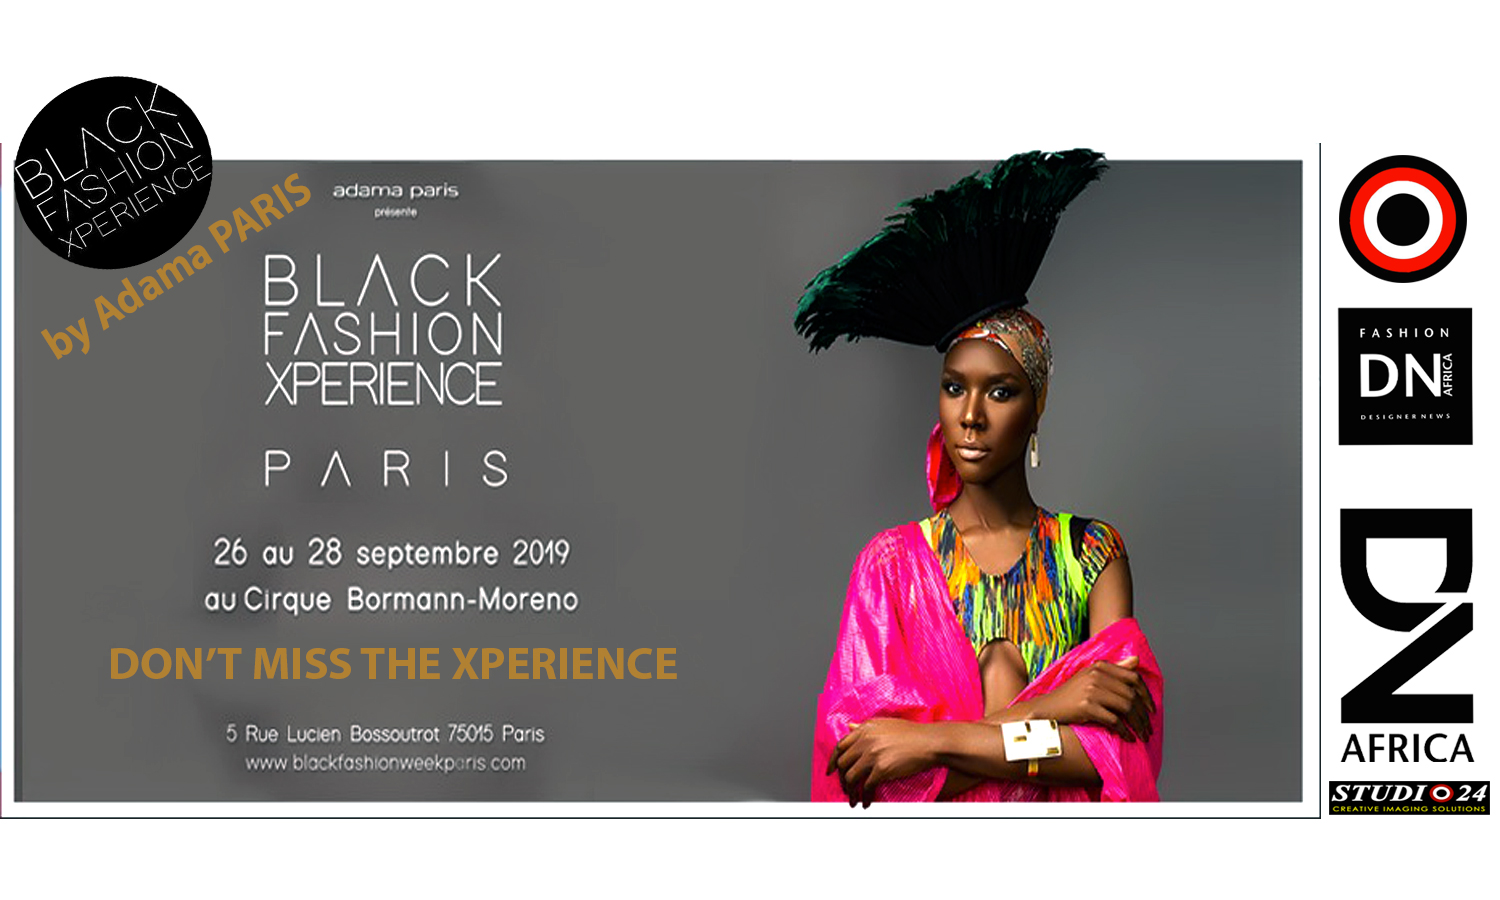 AFRICAN FASHION STYLE MAGAZINE - Black Fashion Xperience 2019 by Adama Paris - Photographer DAN NGU - Official Media Partner DN AFRICA - STUDIO 24 NIGERIA - STUDIO 24 INTERNATIONAL - Ifeanyi Christopher Oputa MD AND CEO OF COLVI LIMITED AND STUDIO 24 - CHEVEUX CHERIE and CHEVEUX CHERIE STUDIO BY MARIEME DUBOZ- Fashion Editor Nahomie NOOR COULIBALY